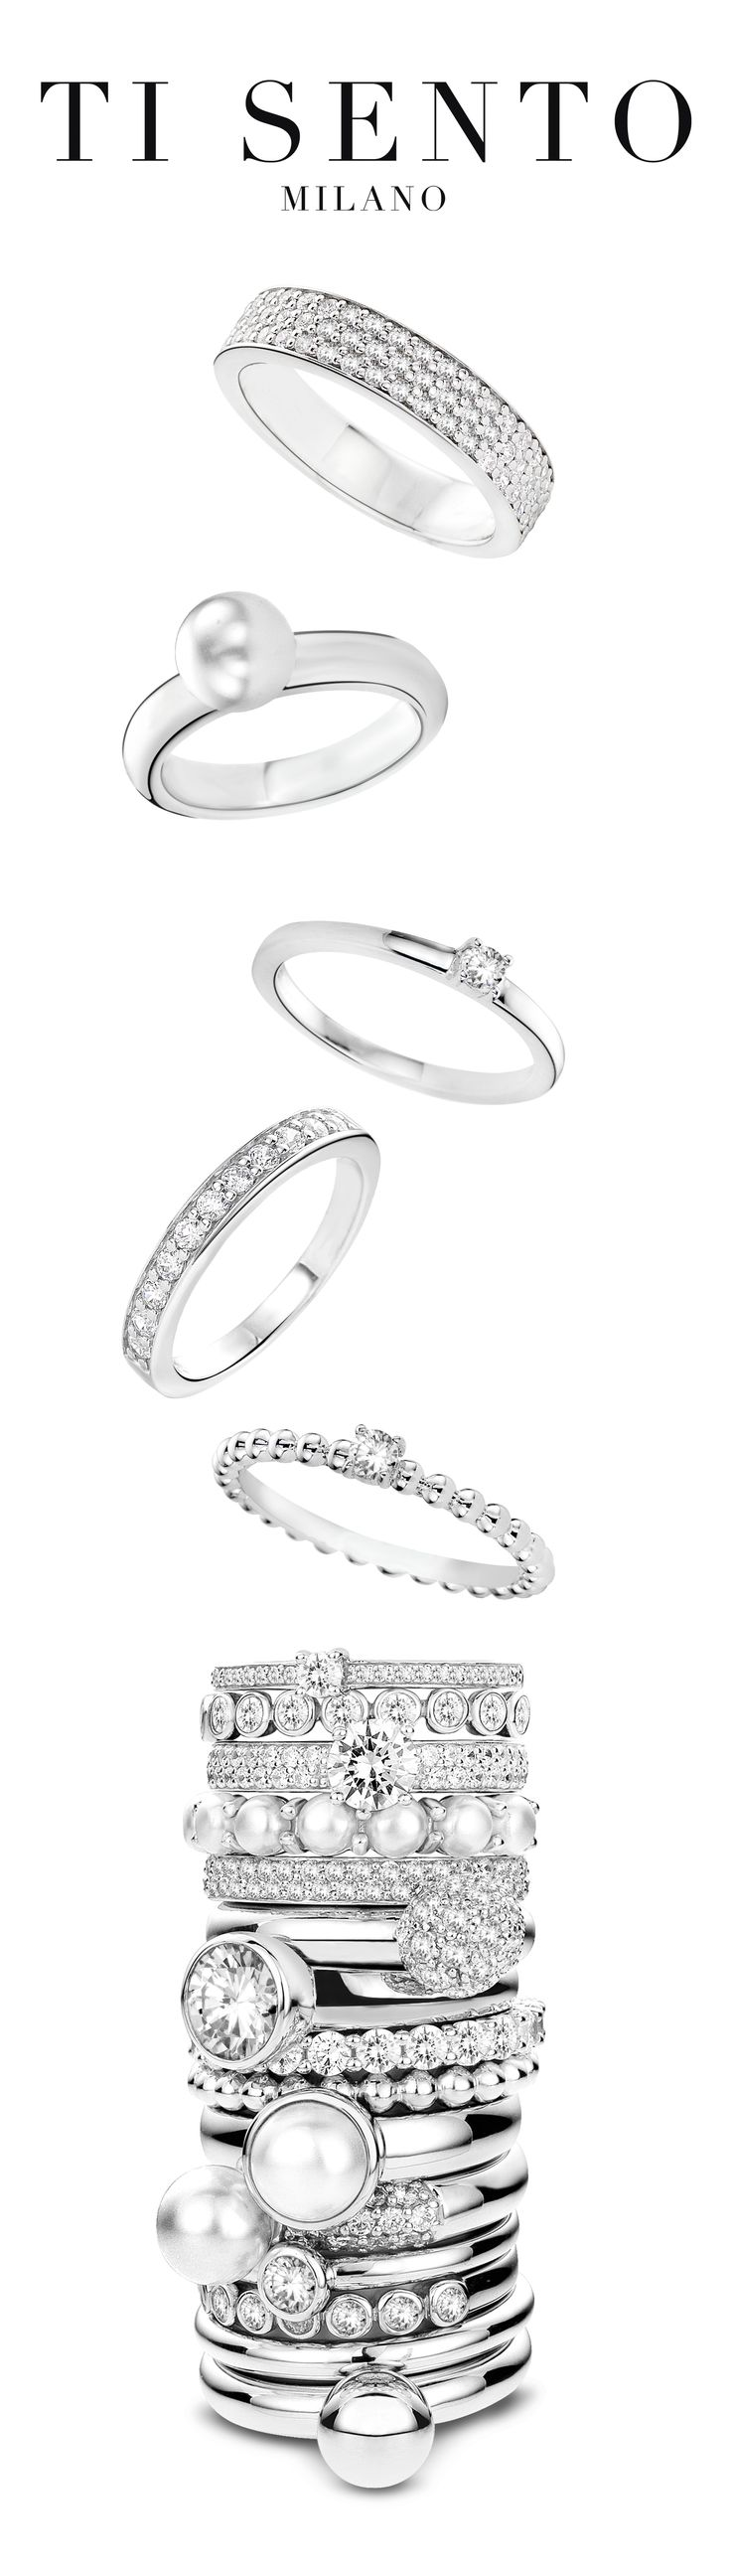 Stack your way to the top! Ti Sento Milano has the ring just for you! Come find it at Diamontrigue!